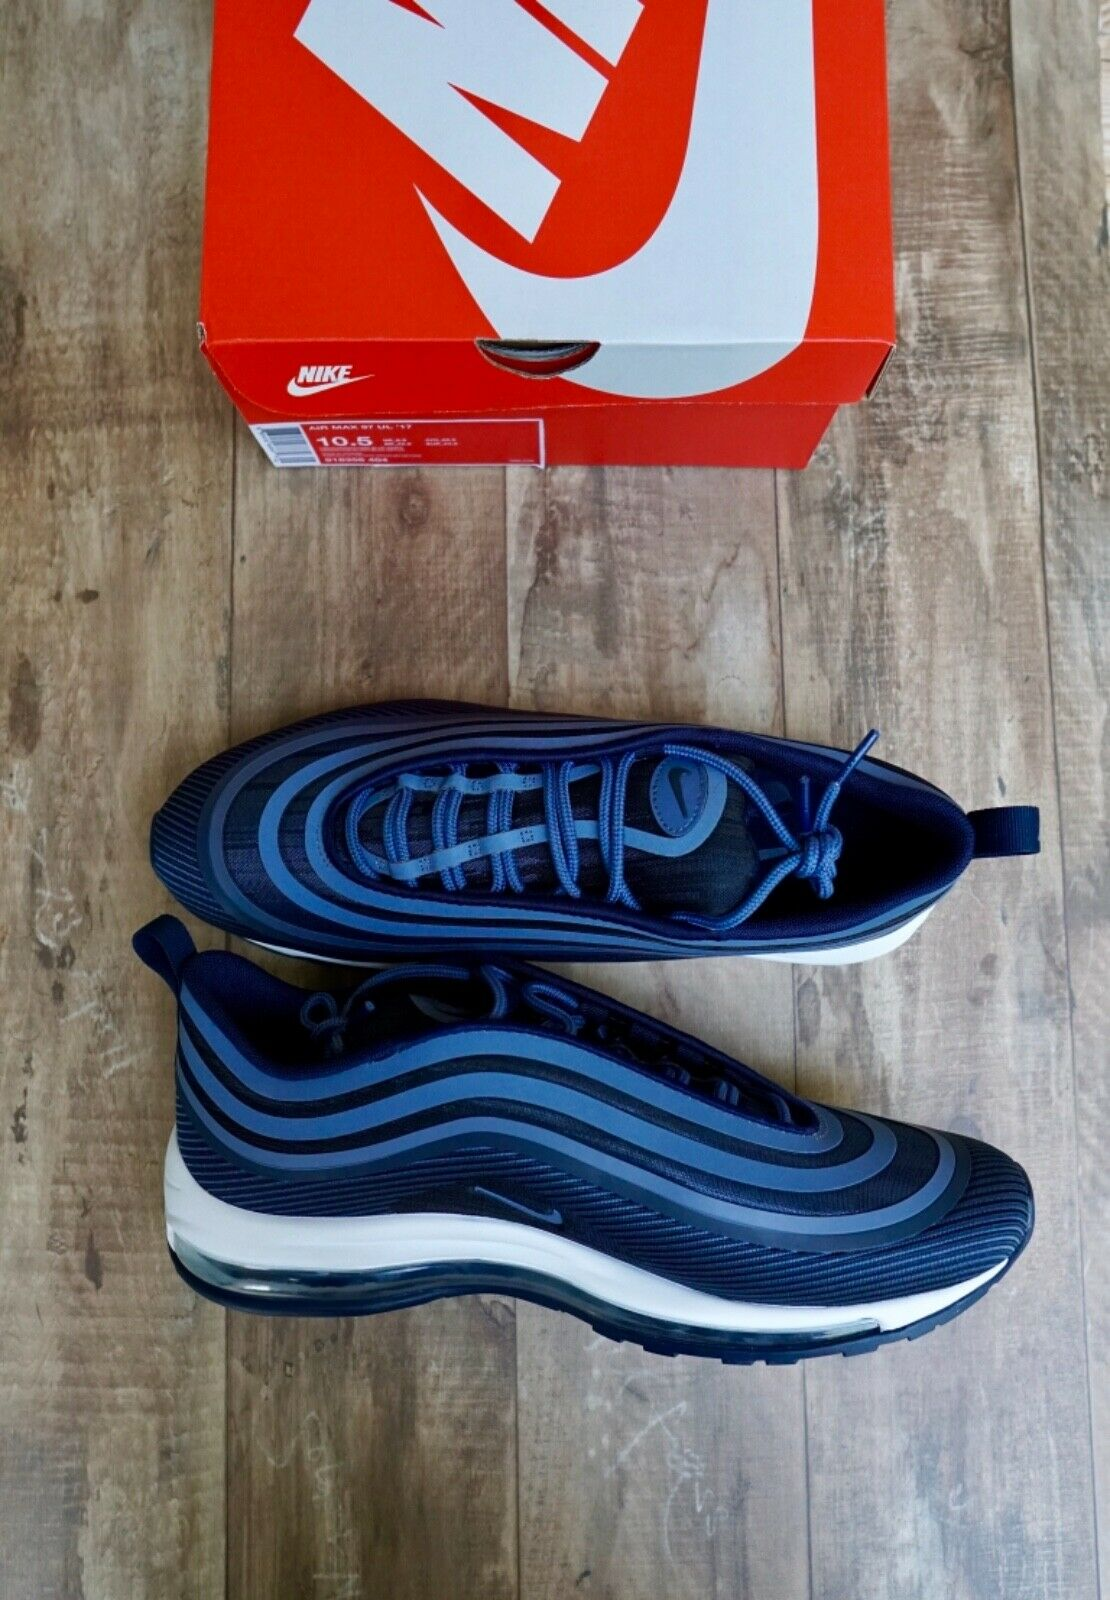 New Nike Air Max 97 Ultra '17 Men's shoes Obsidian Diffused bluee 918356-404